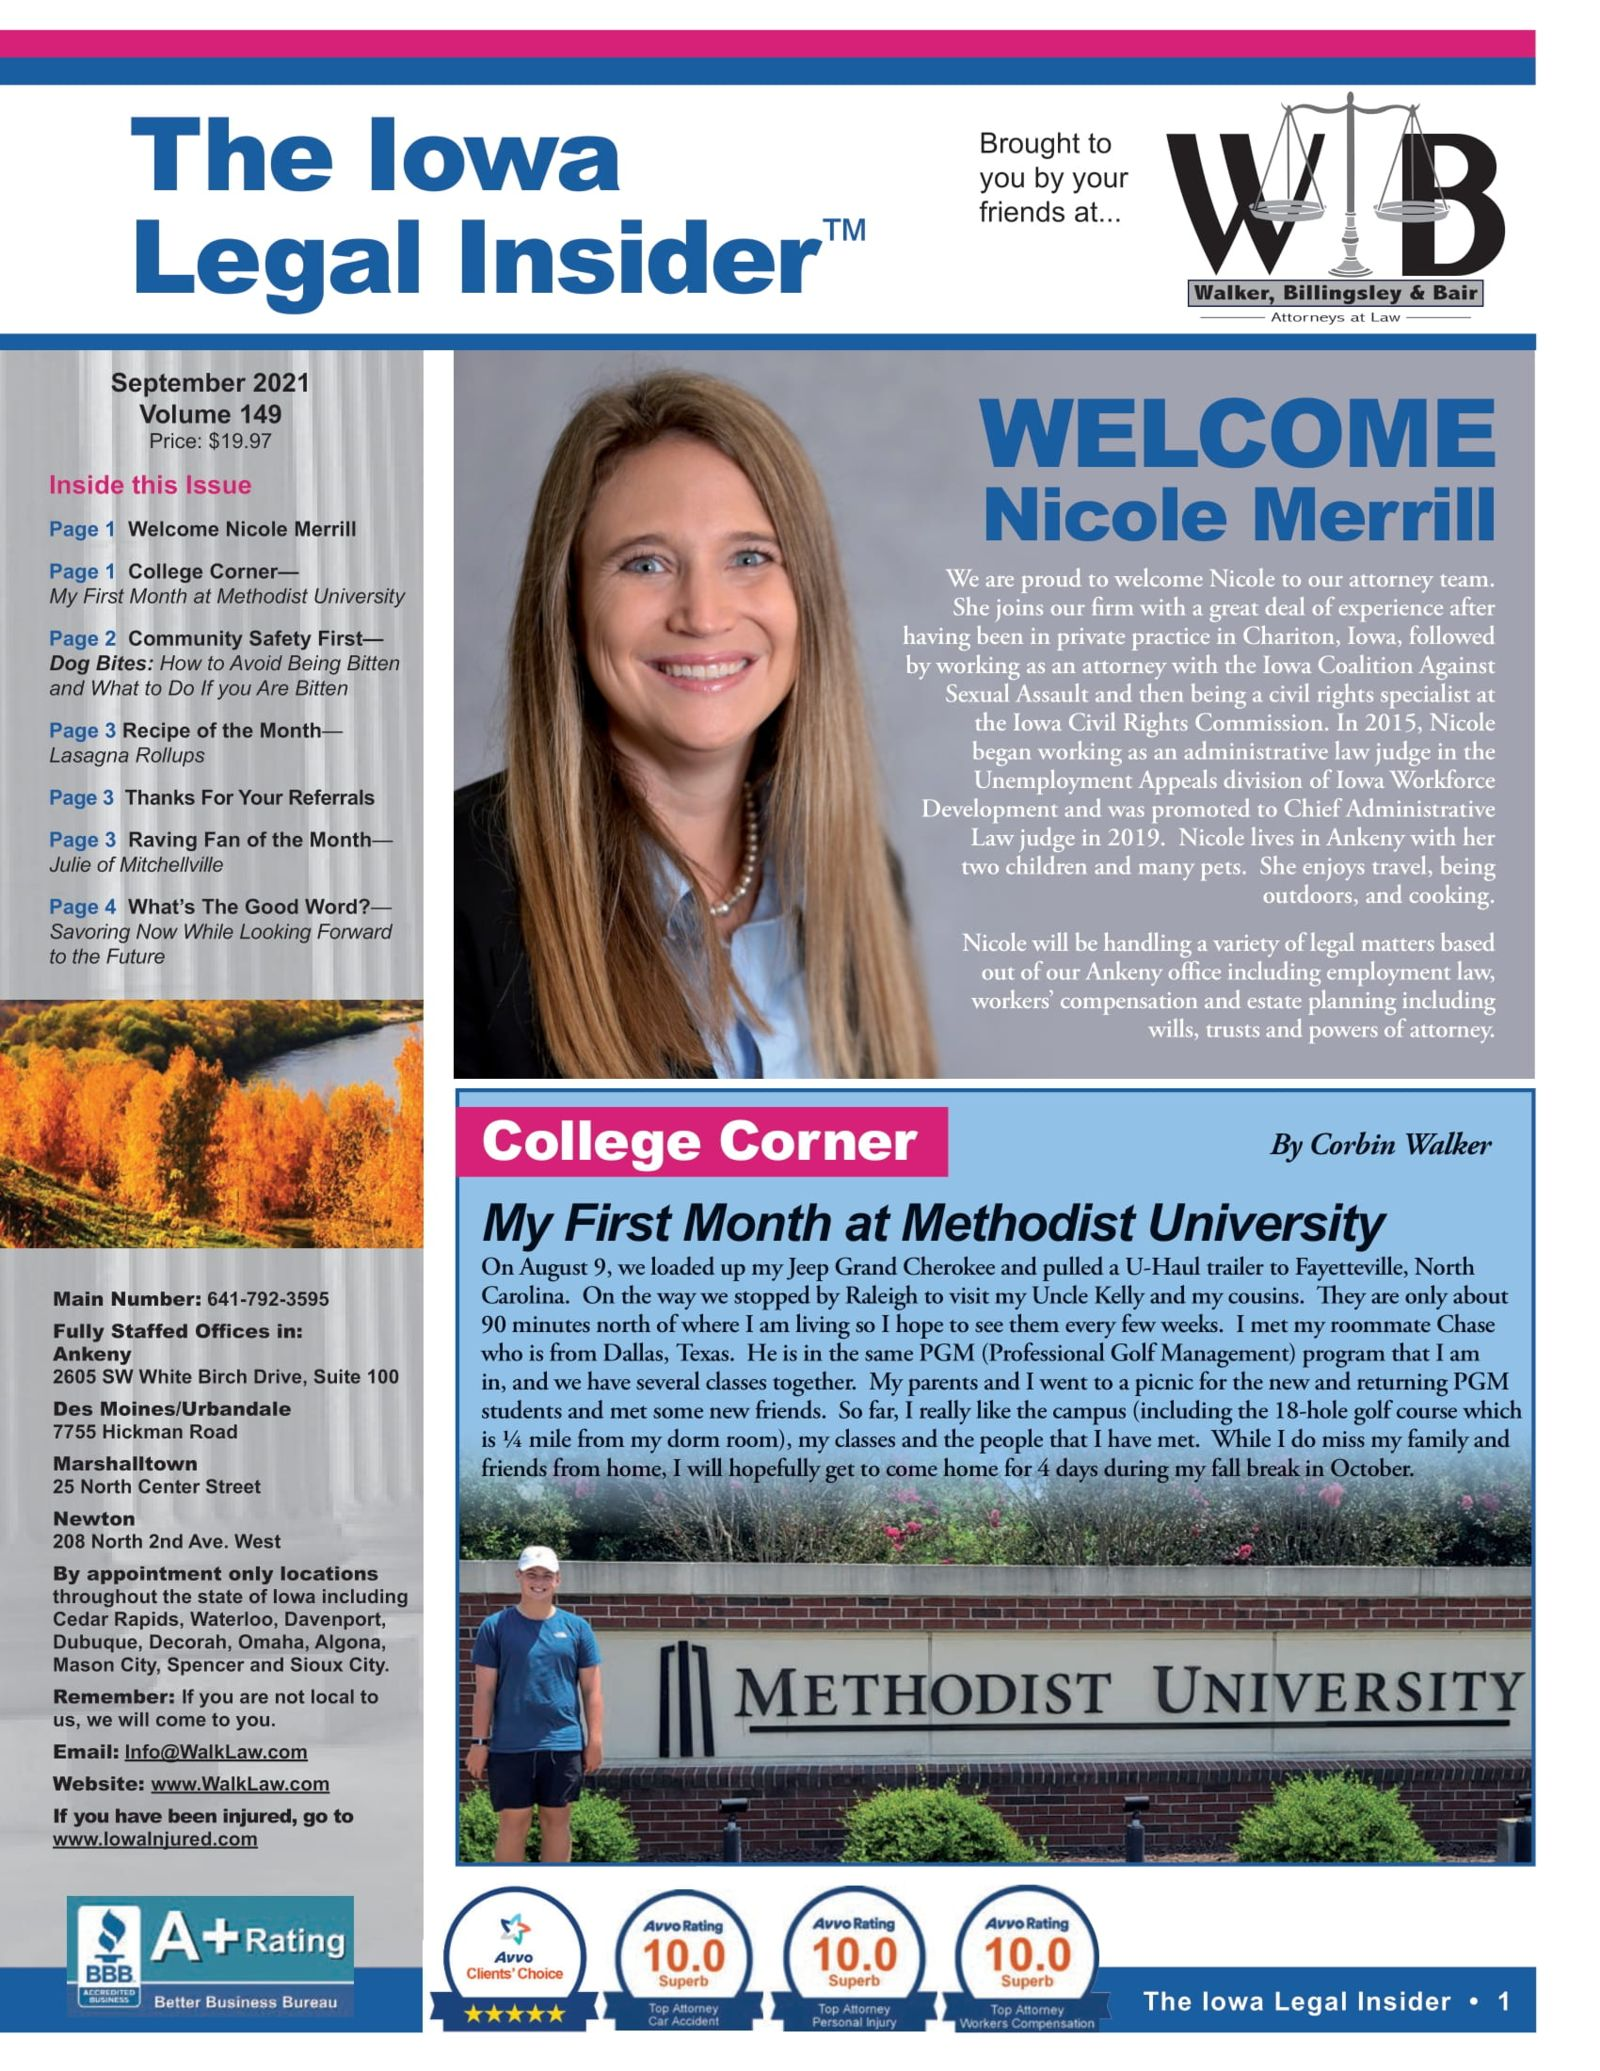 Welcome Nicole Merrill and Corbins First Month at Methodist University